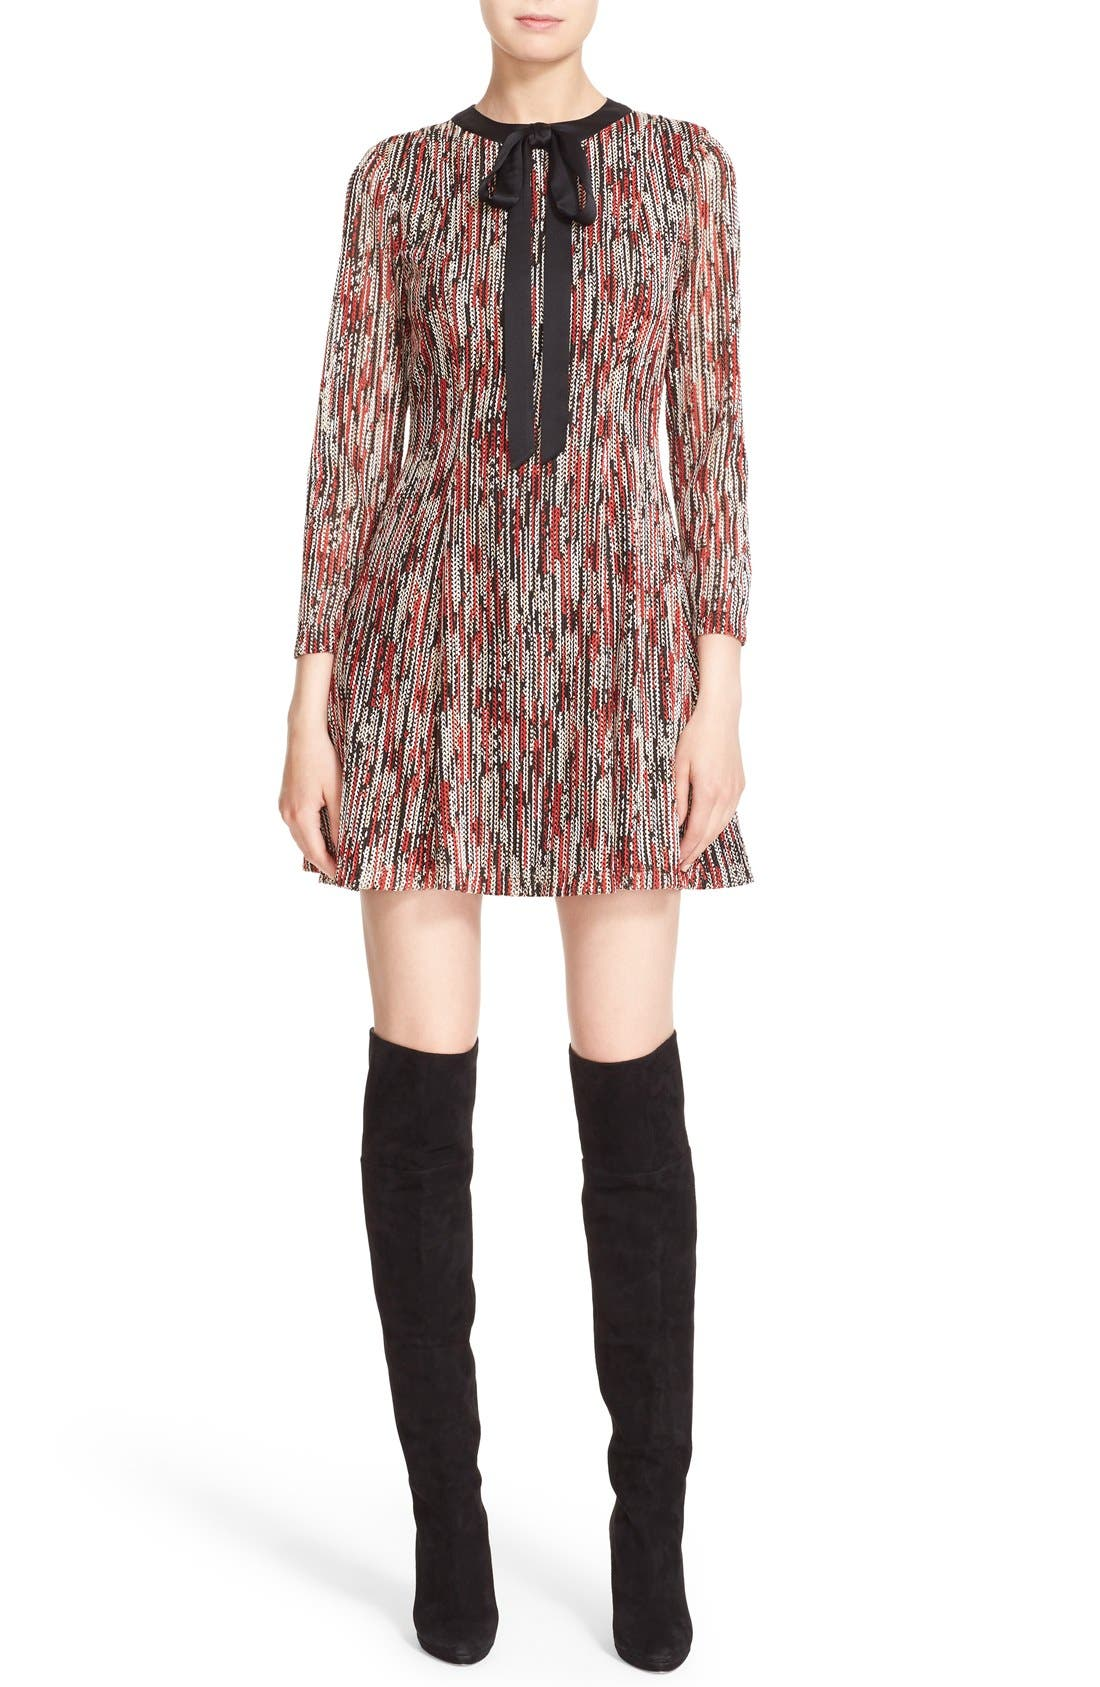 Alternate Image 1 Selected - Alice + Olivia 'Gwyneth' Print Tie Neck Fit & Flare Dress